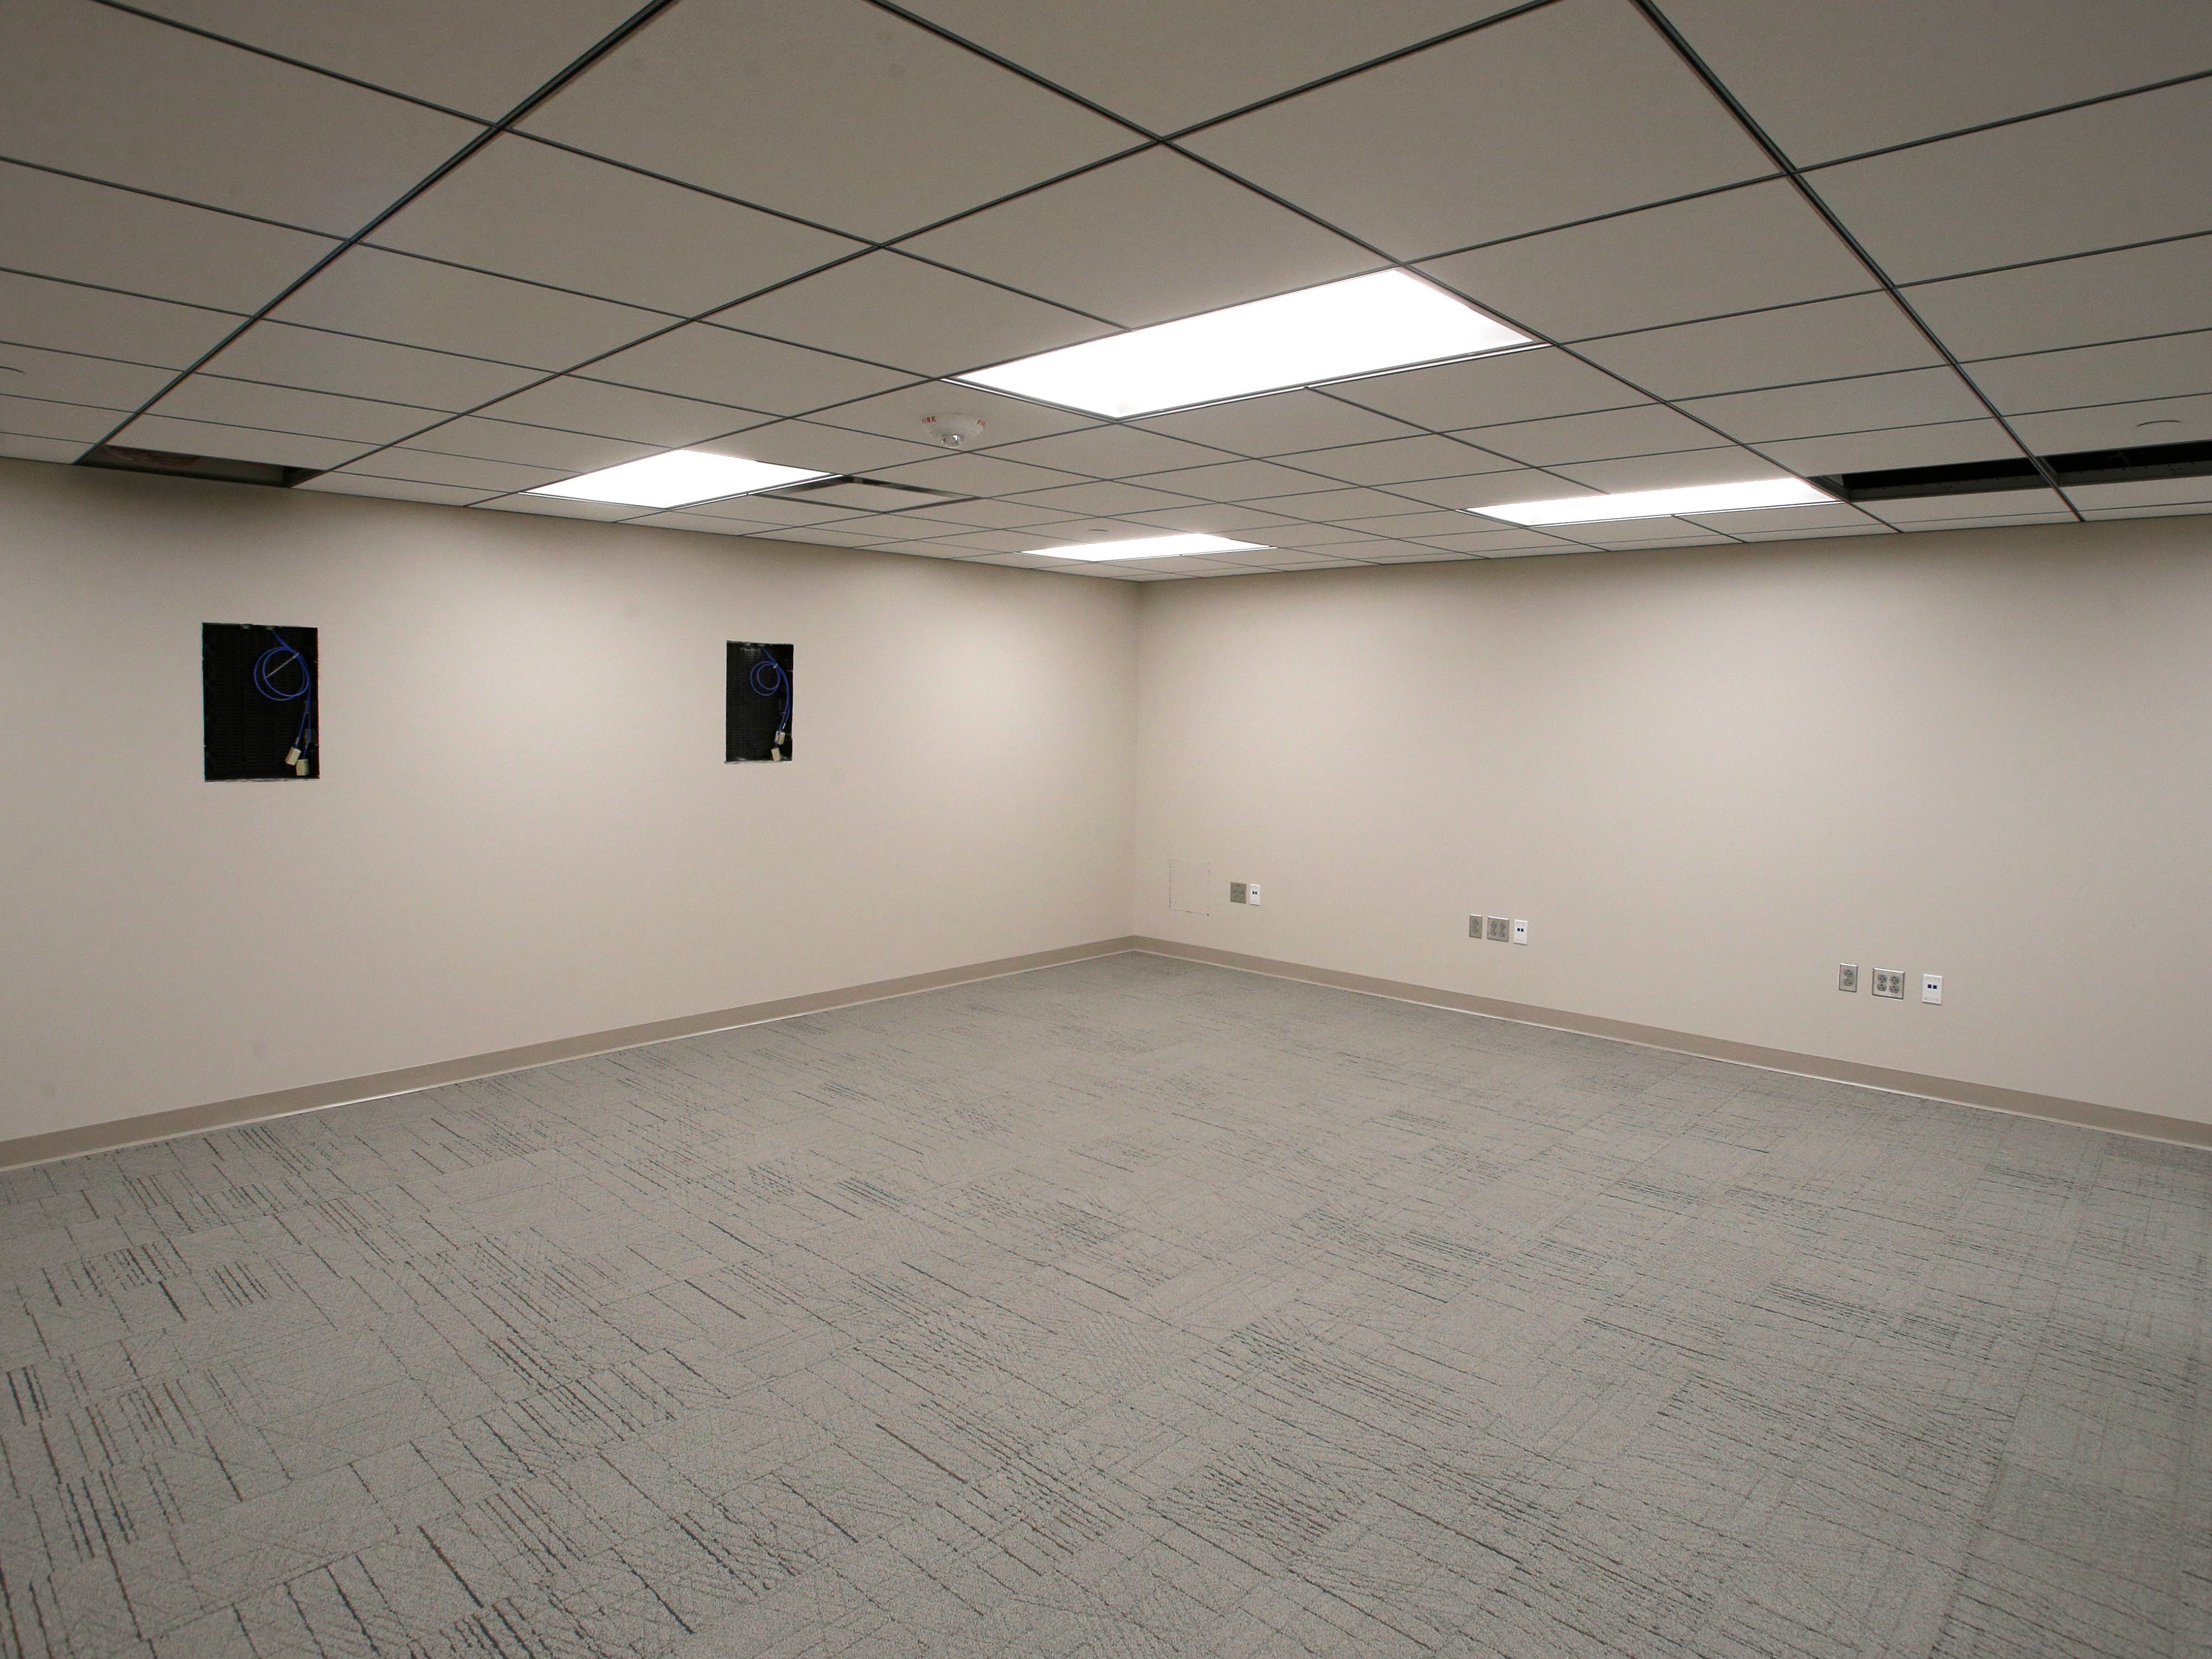 A basement training room in the newly remodeled Sheboygan City Hall as seen, Tuesday, May 7, 2019, in Sheboygan, Wis.